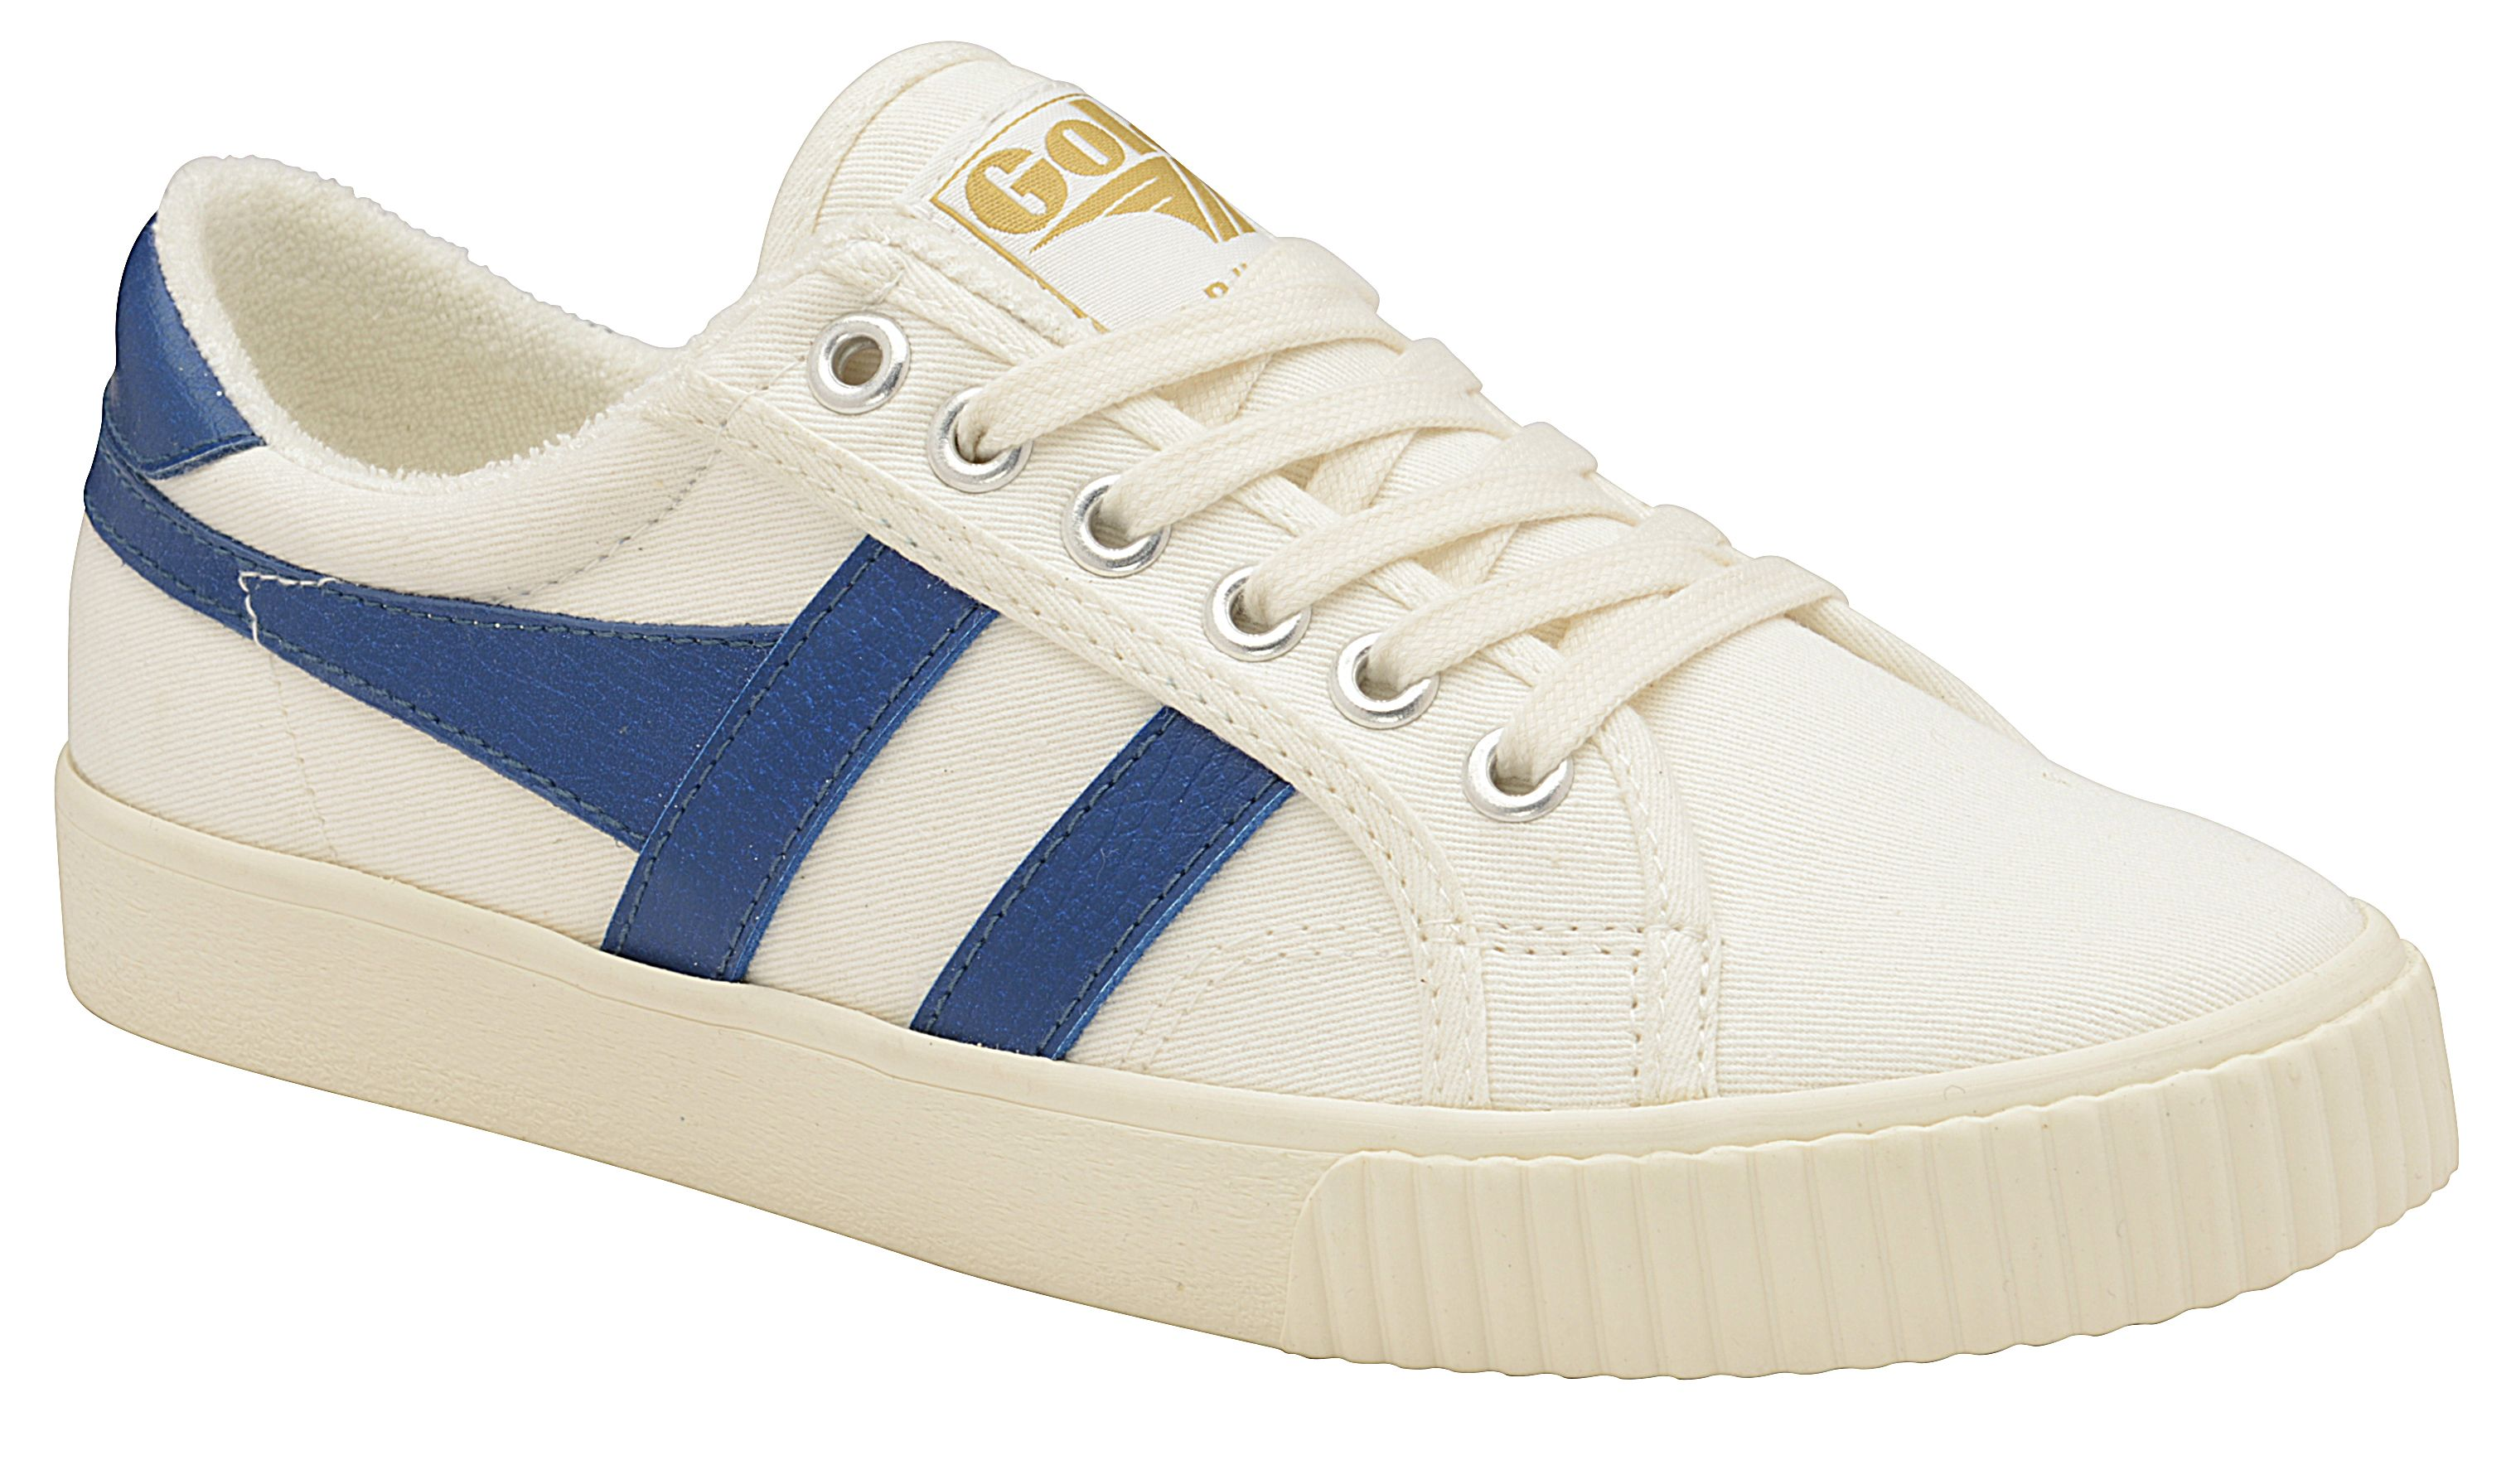 Gola Tennis Mark Cox Lace Up Trainers, Off White